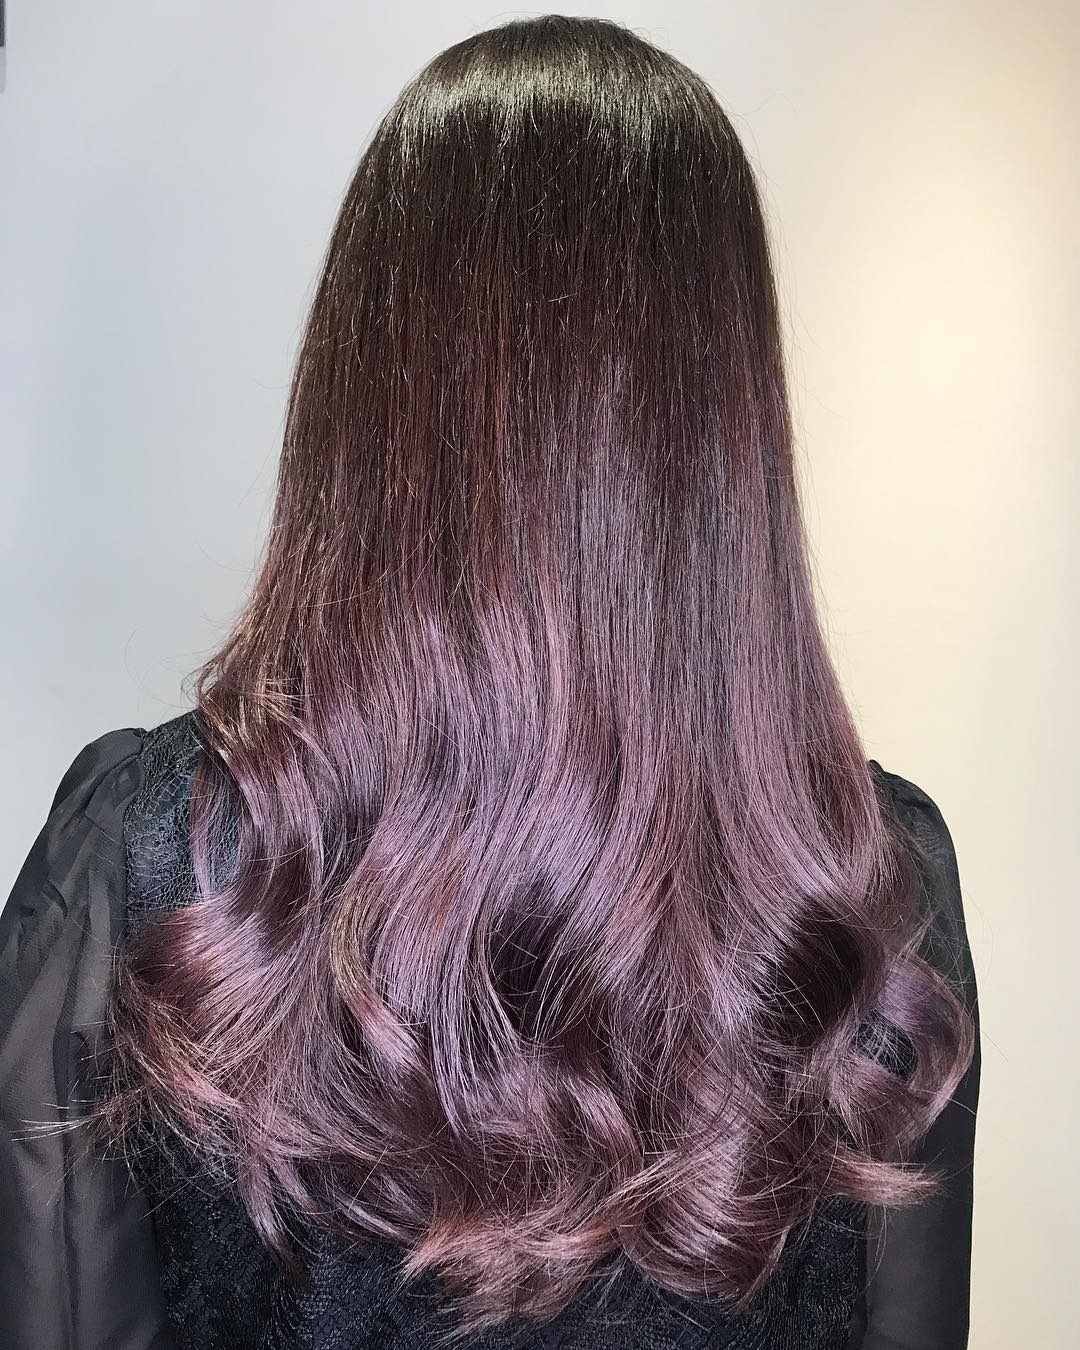 Purple Hair Colour by Ken from Threes